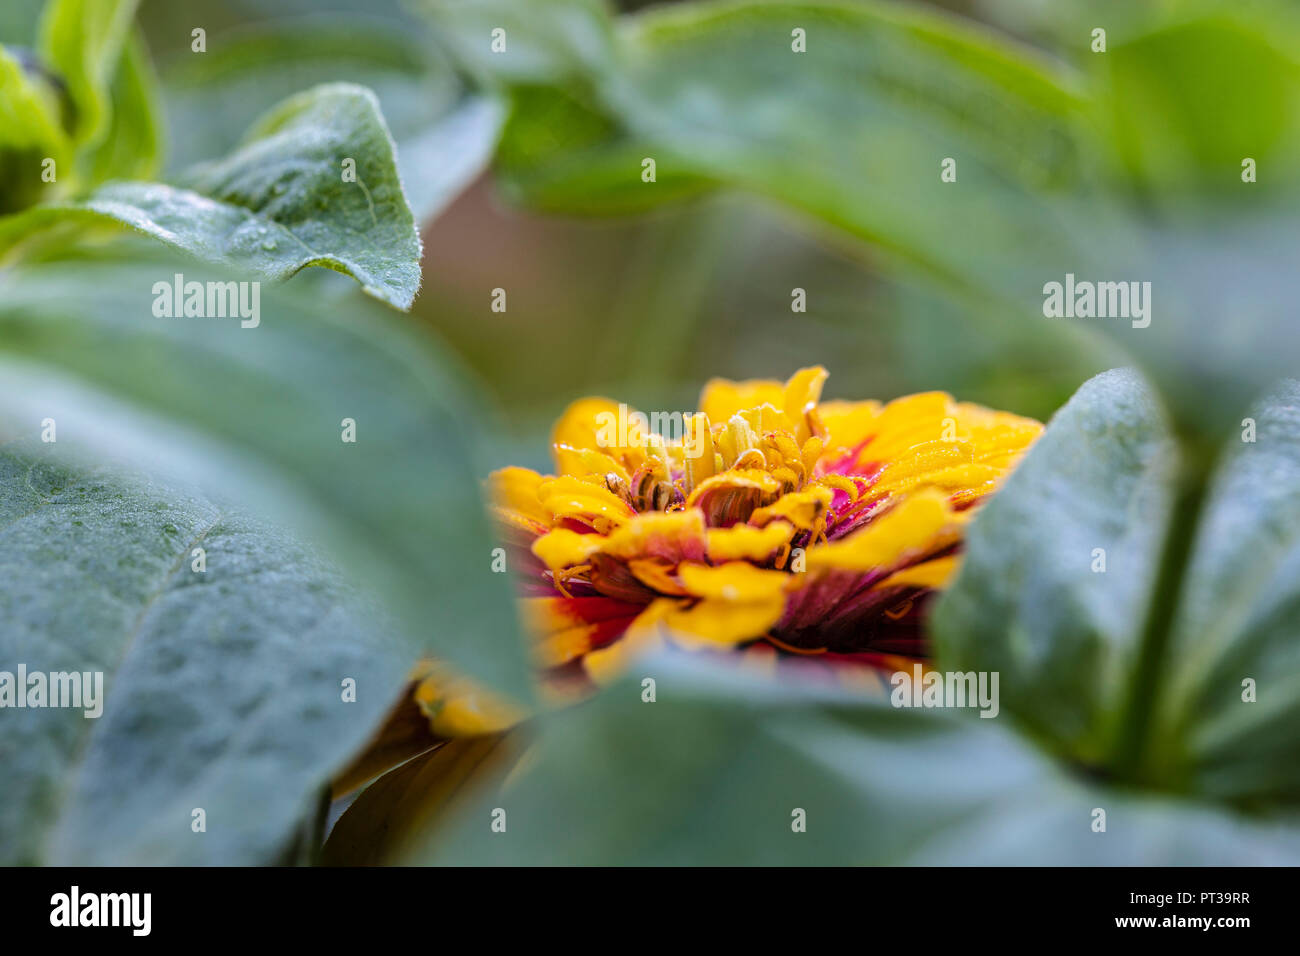 Common zinnia 'Macarena' - Stock Image